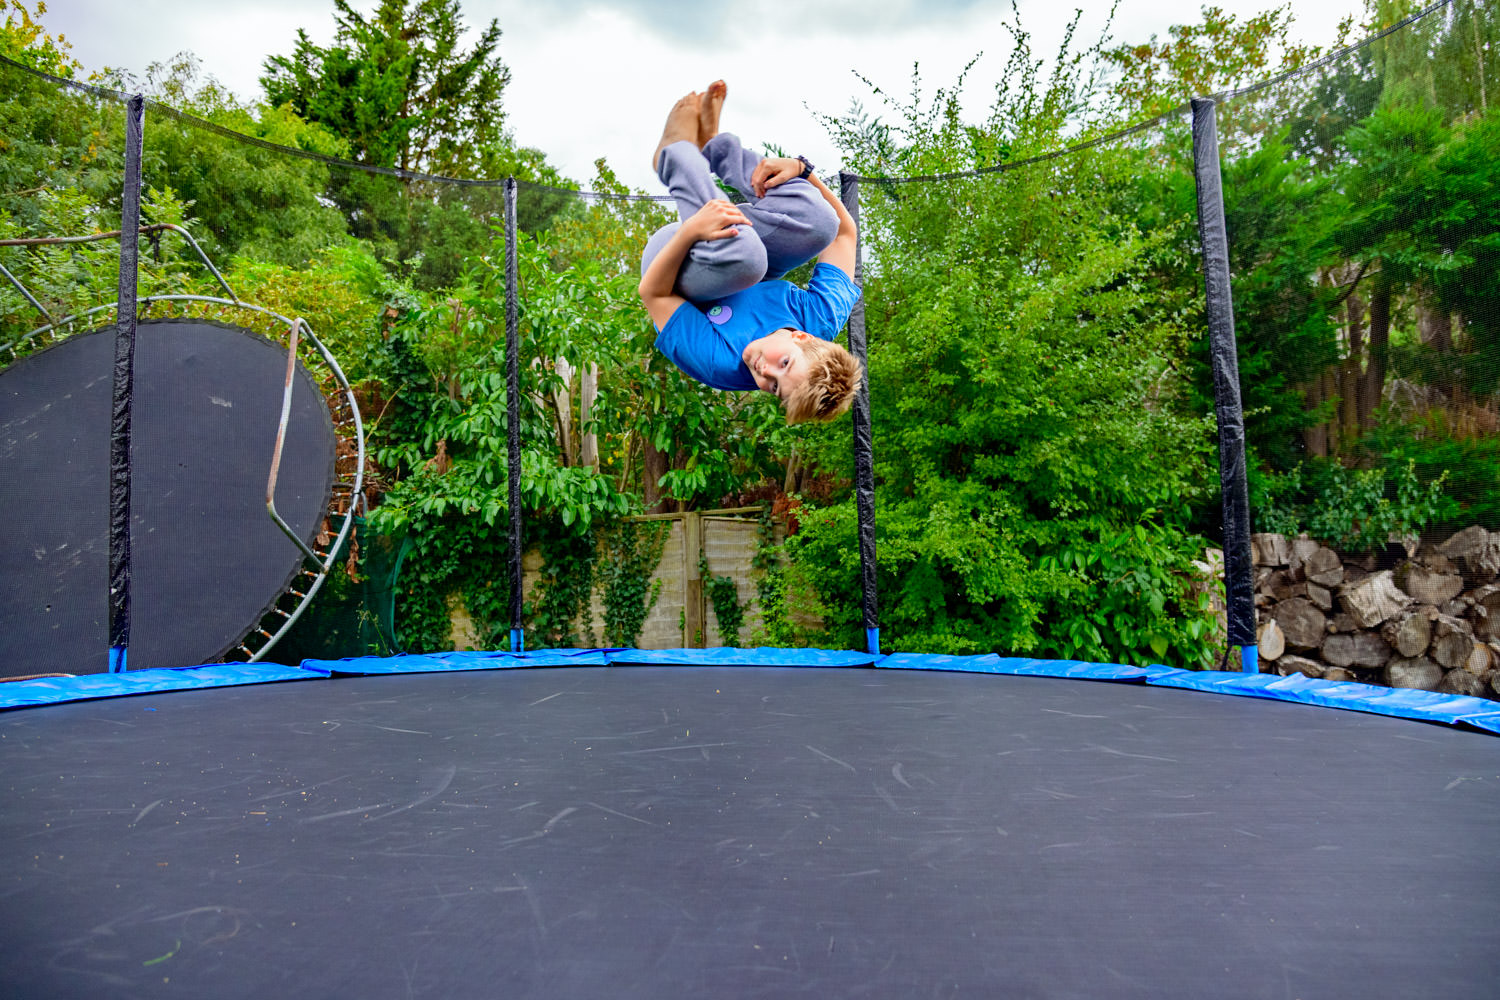 Boy suspended mid air as he does a somersault on the trampoline